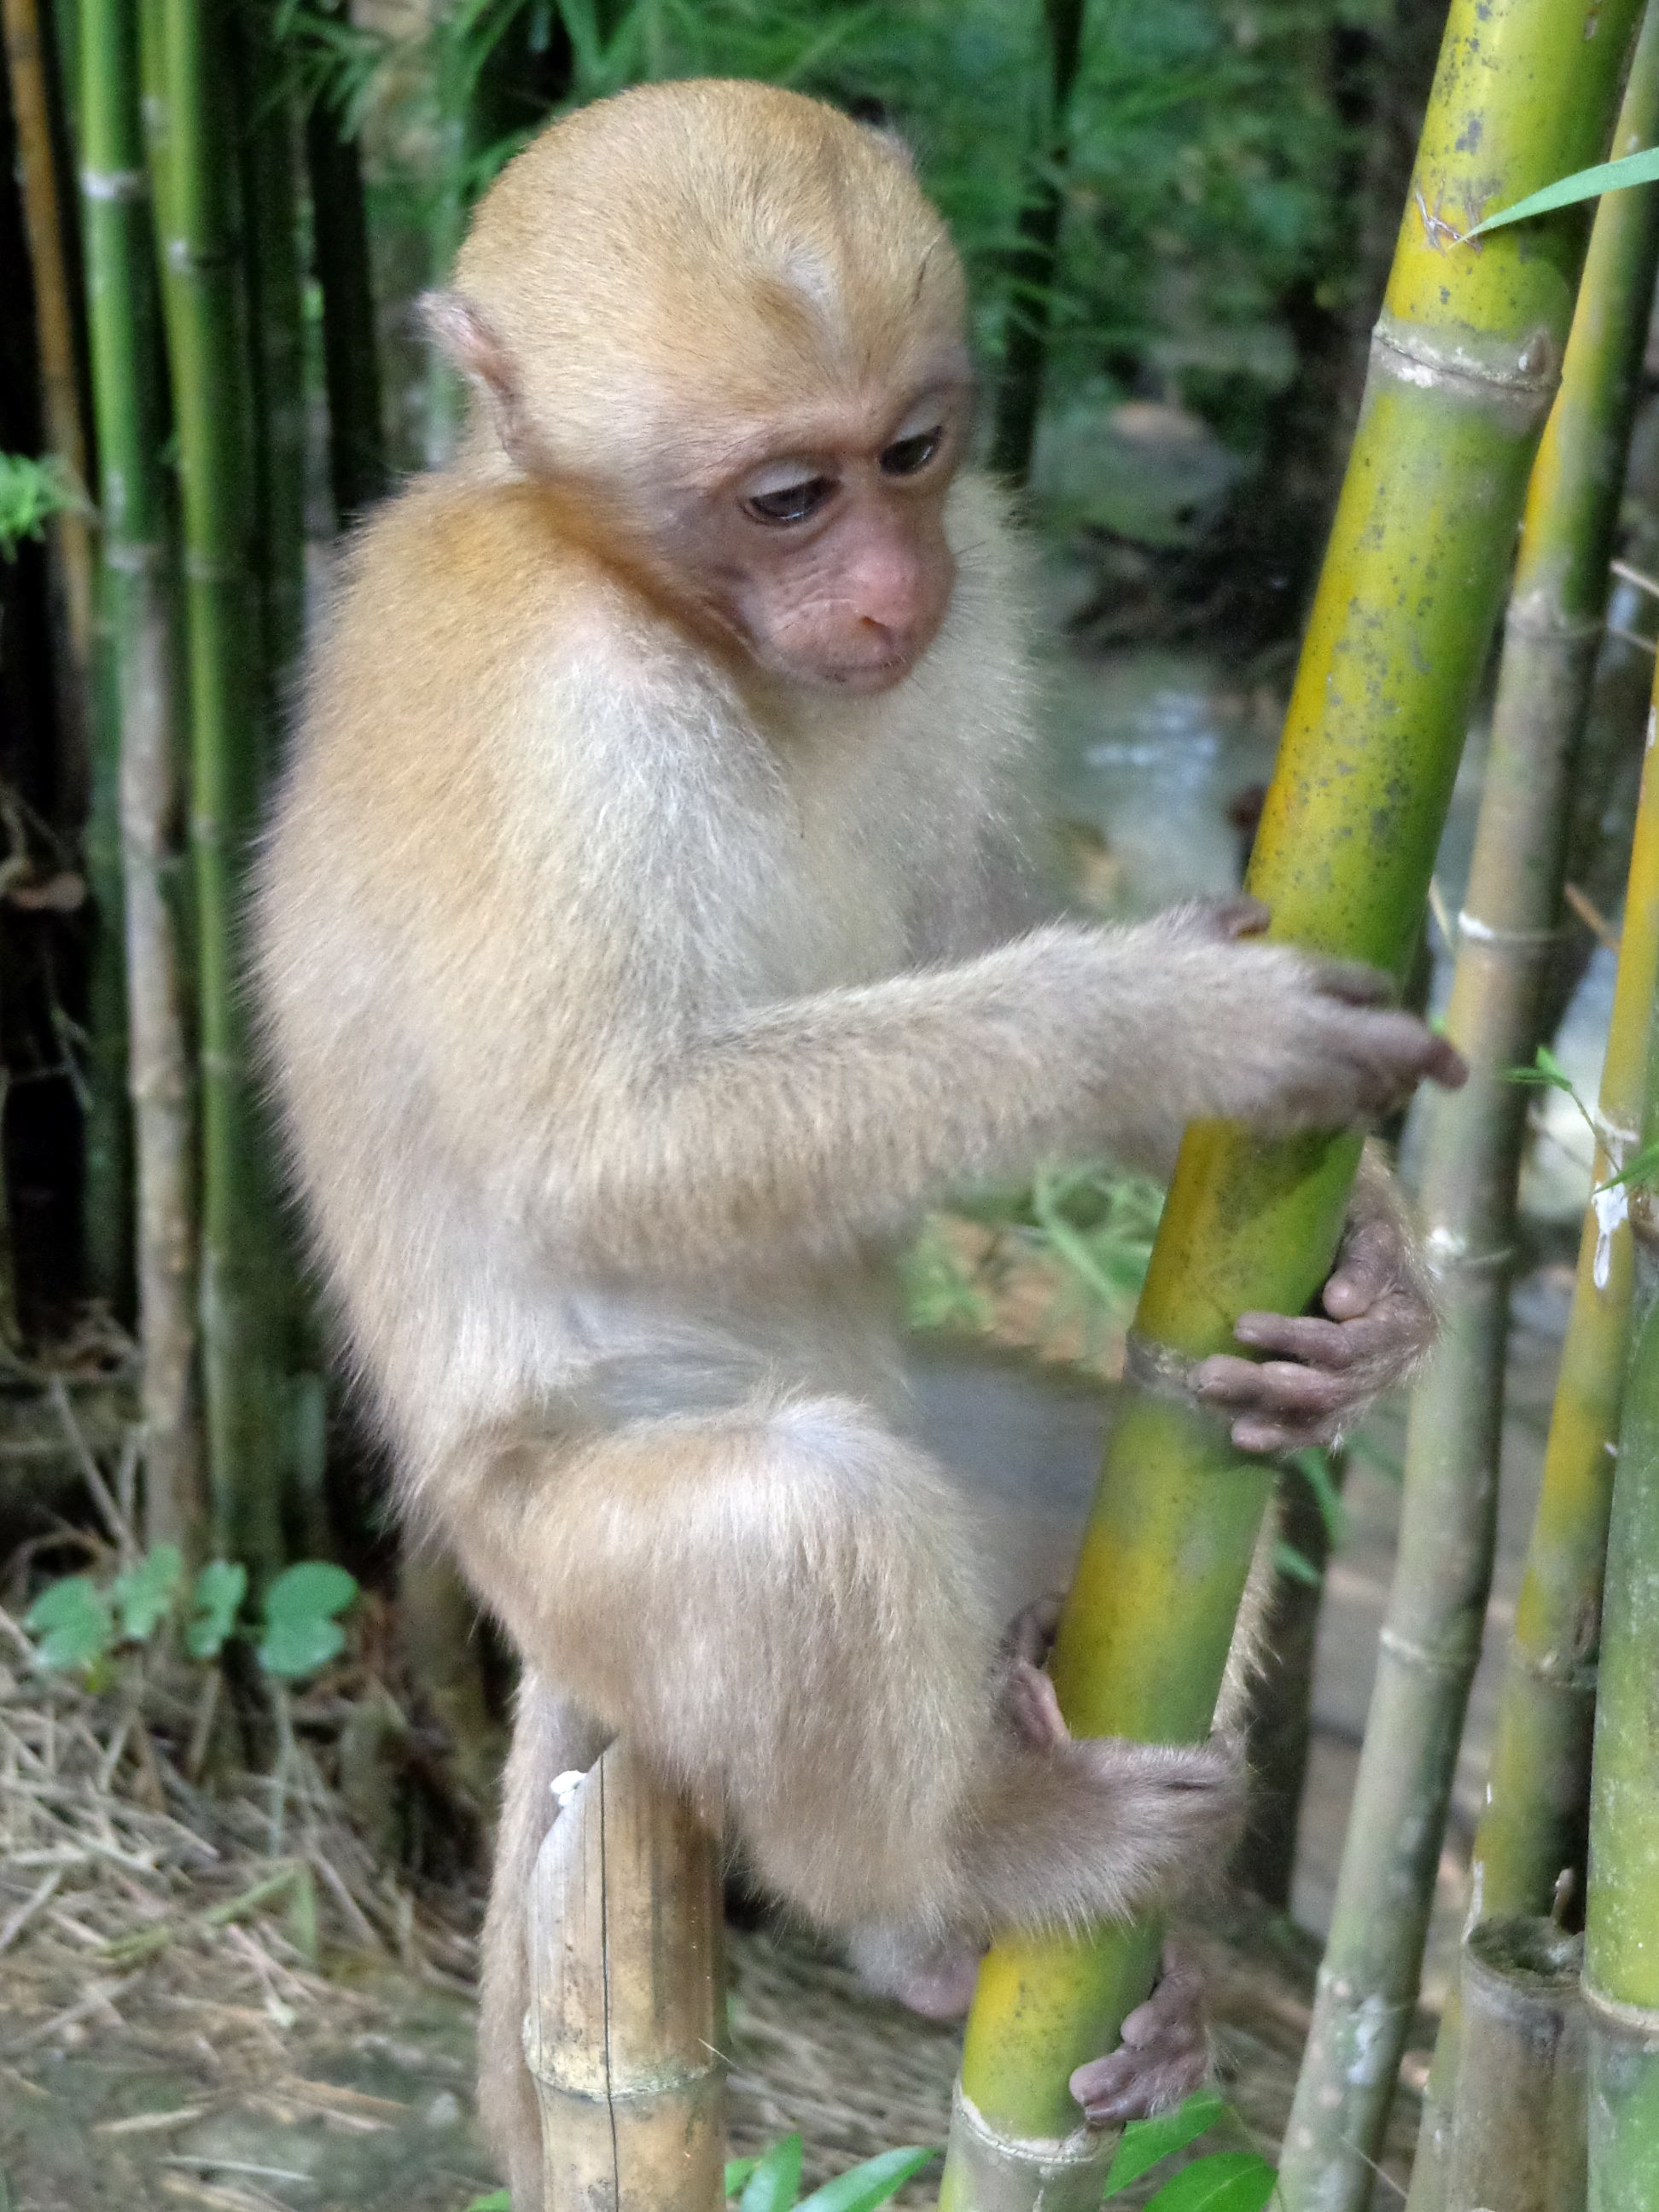 A monkey in Thailand